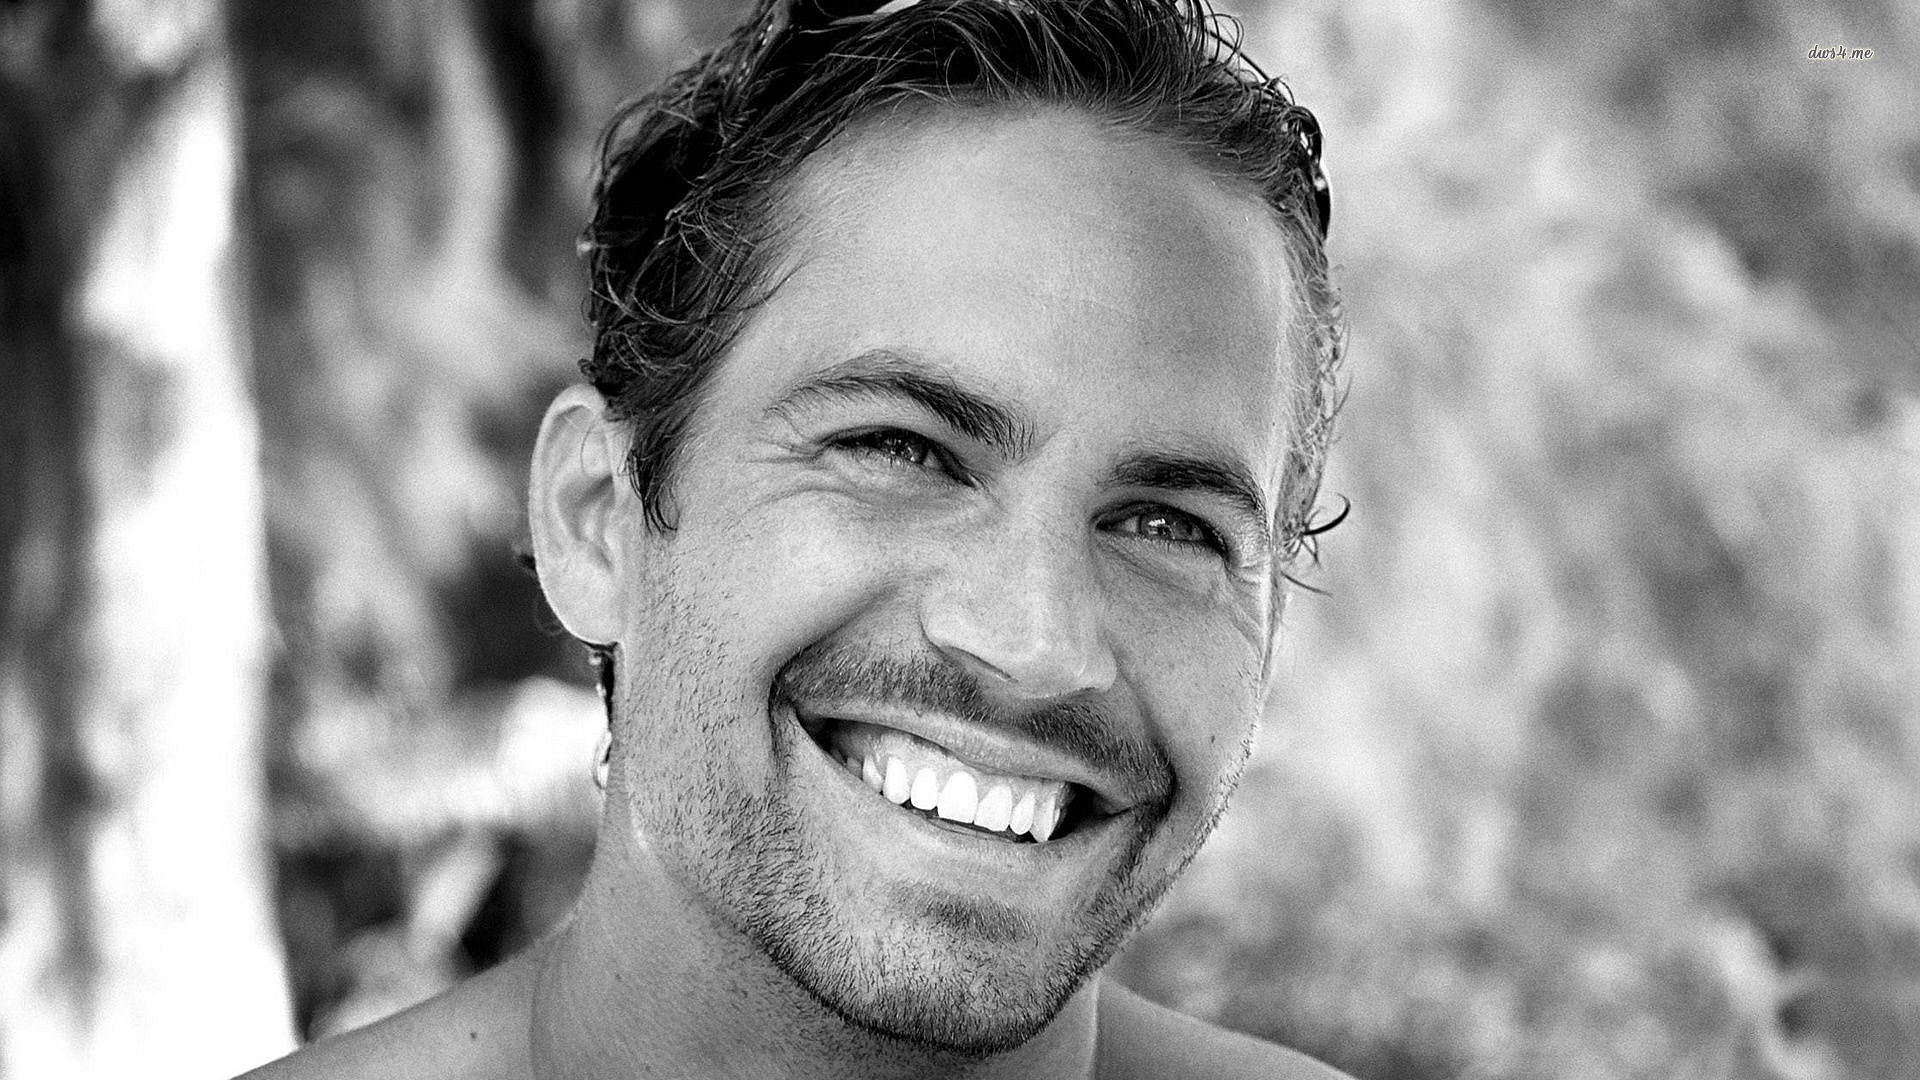 paul walker full hd wallpaper and background image | 1920x1080 | id